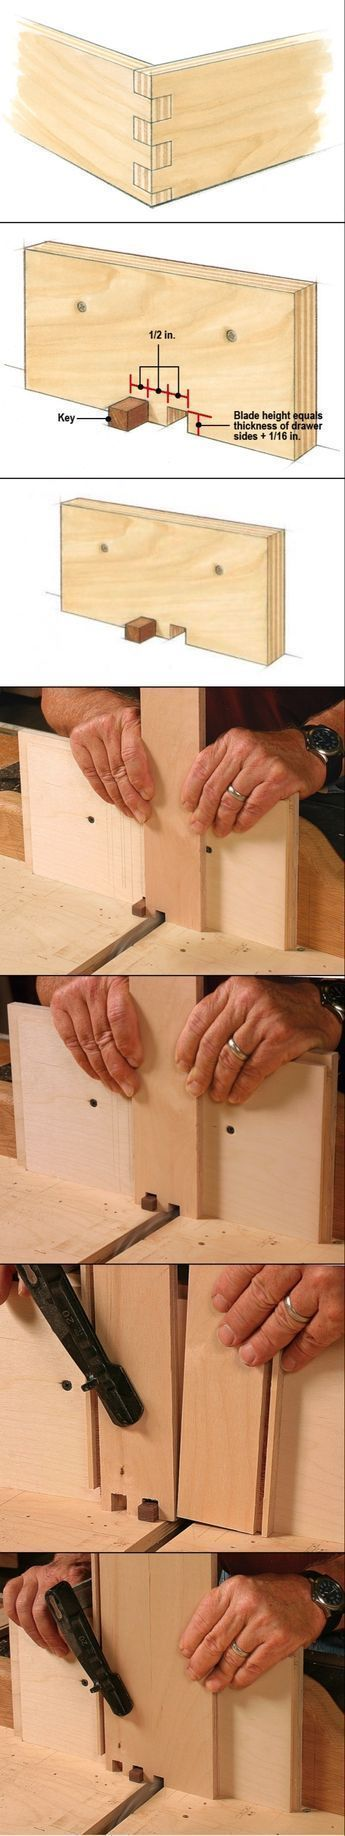 Box Joint Jig Handles Drawer Joinery with Ease #WoodworkingProjectsWithJig #WoodworkingTools #woodworkingshop